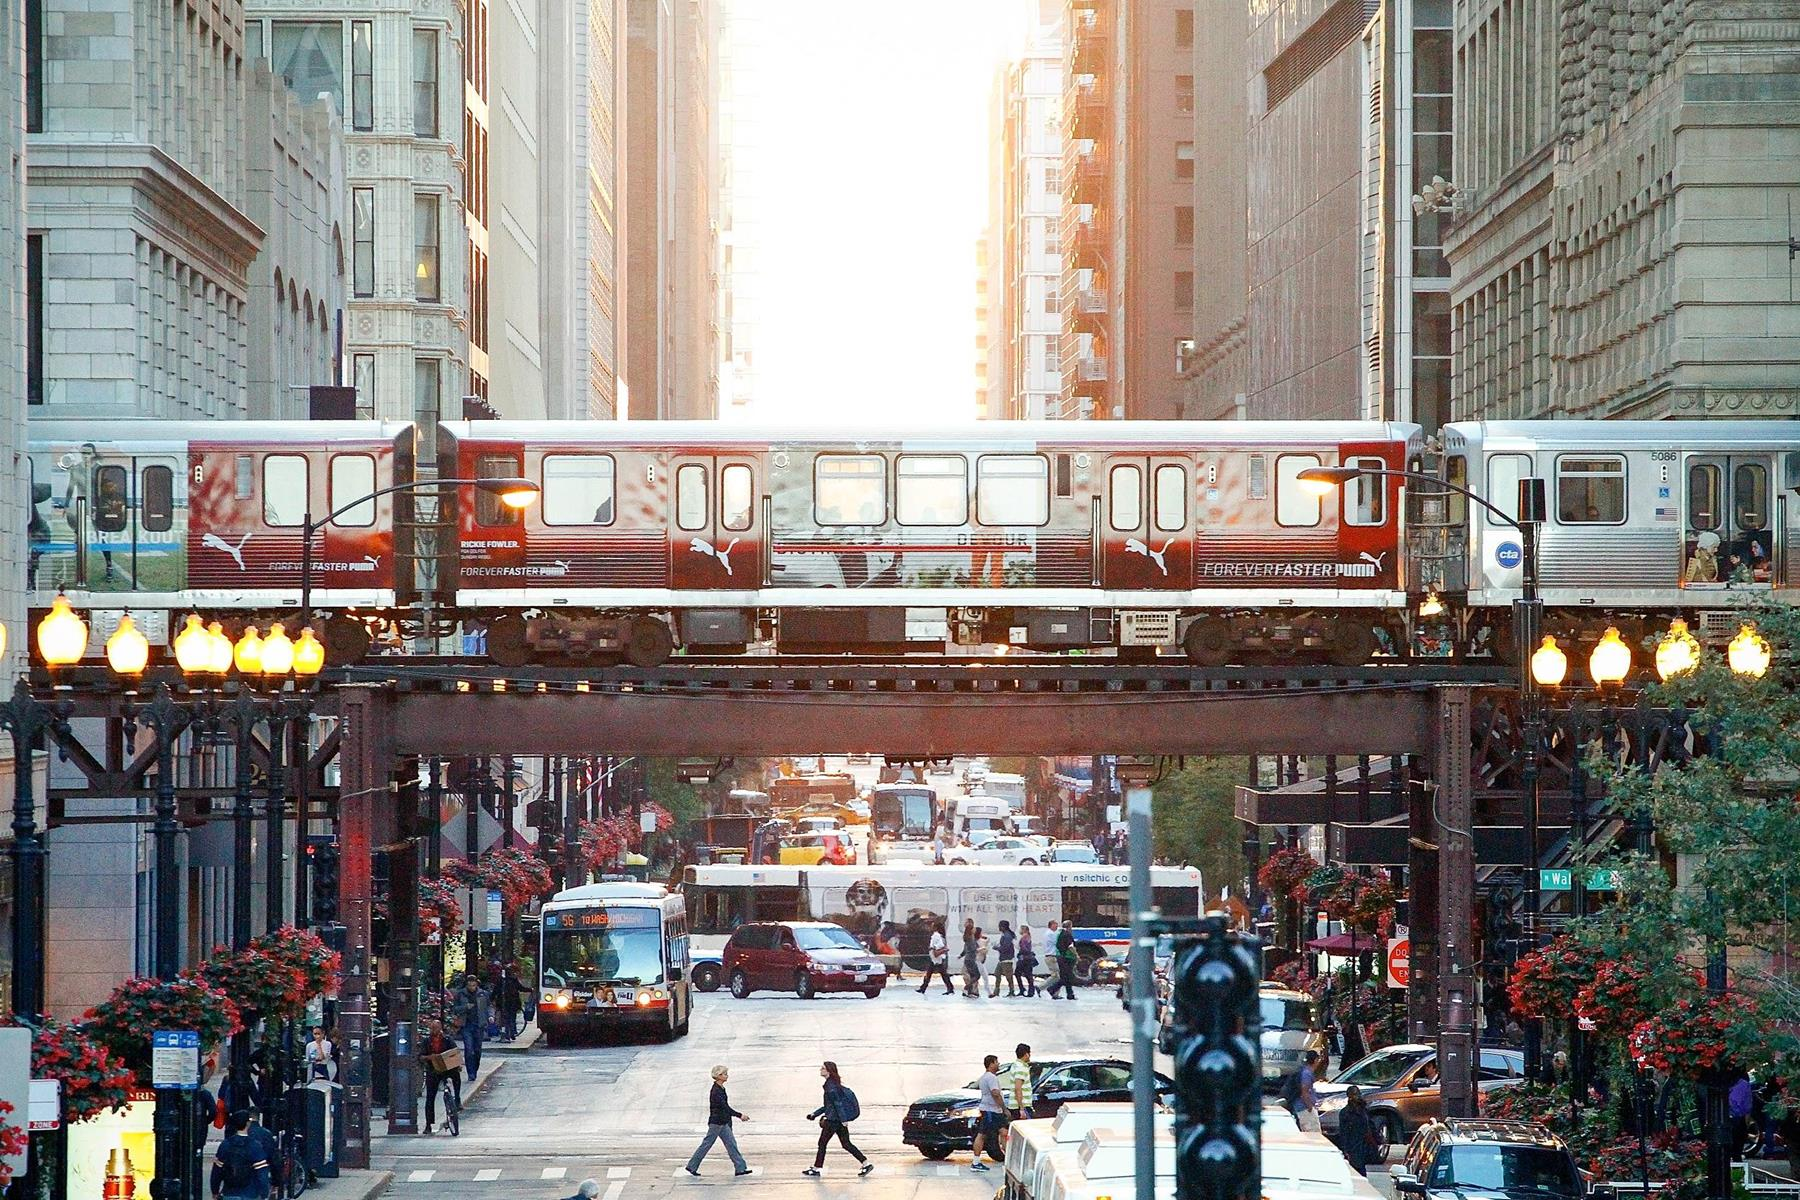 Best Public Transit Cities for Student Groups